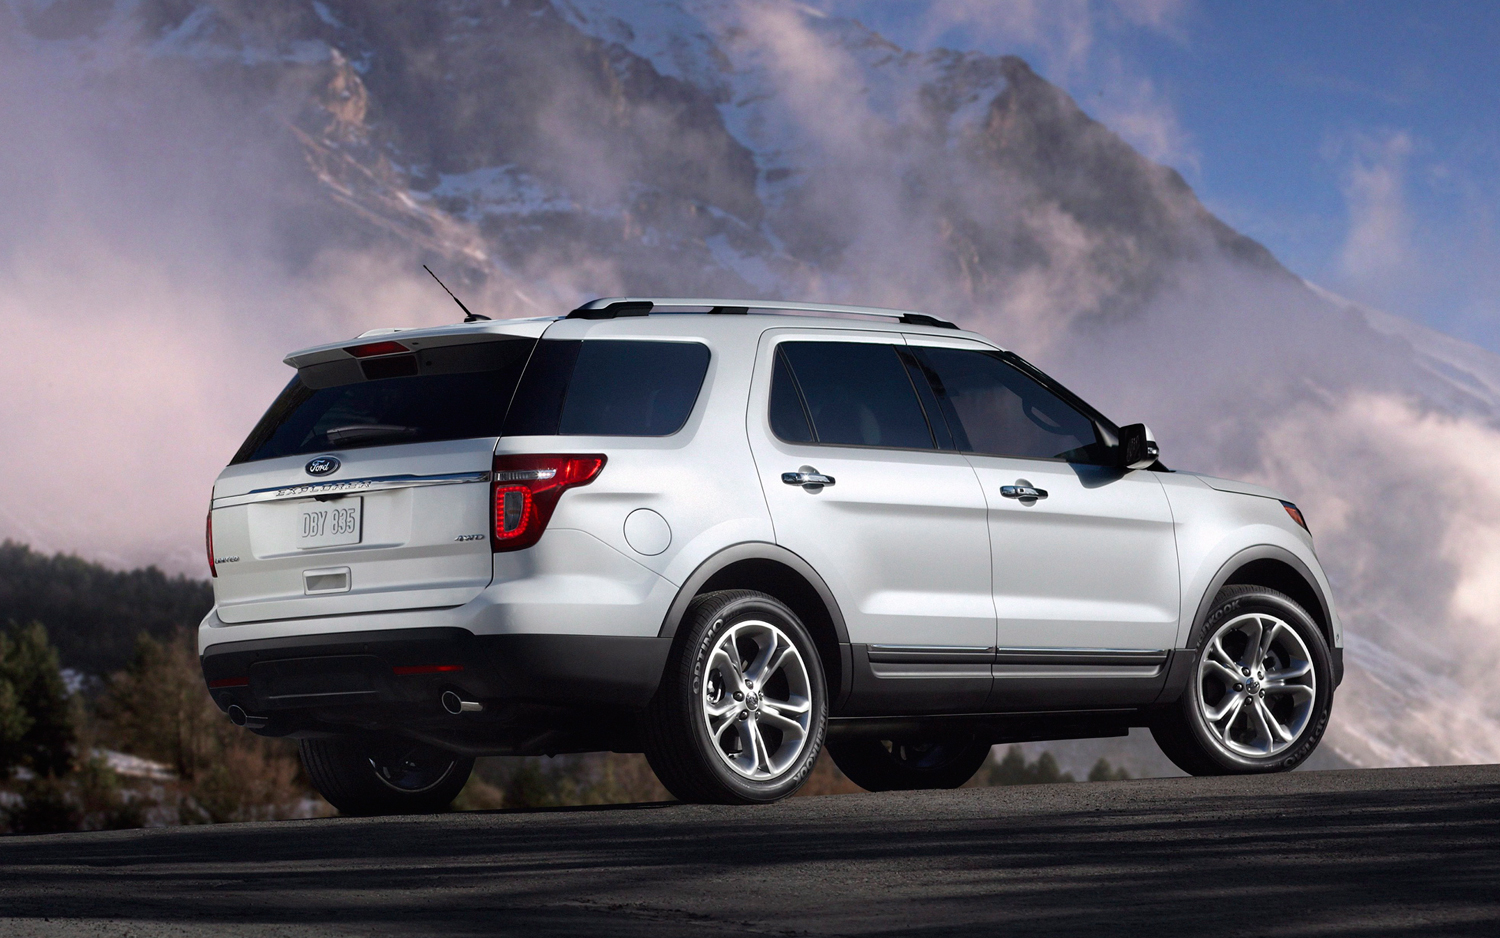 Ford Com Mx >> 2012 Ford Explorer Photo Gallery Photo Image Gallery